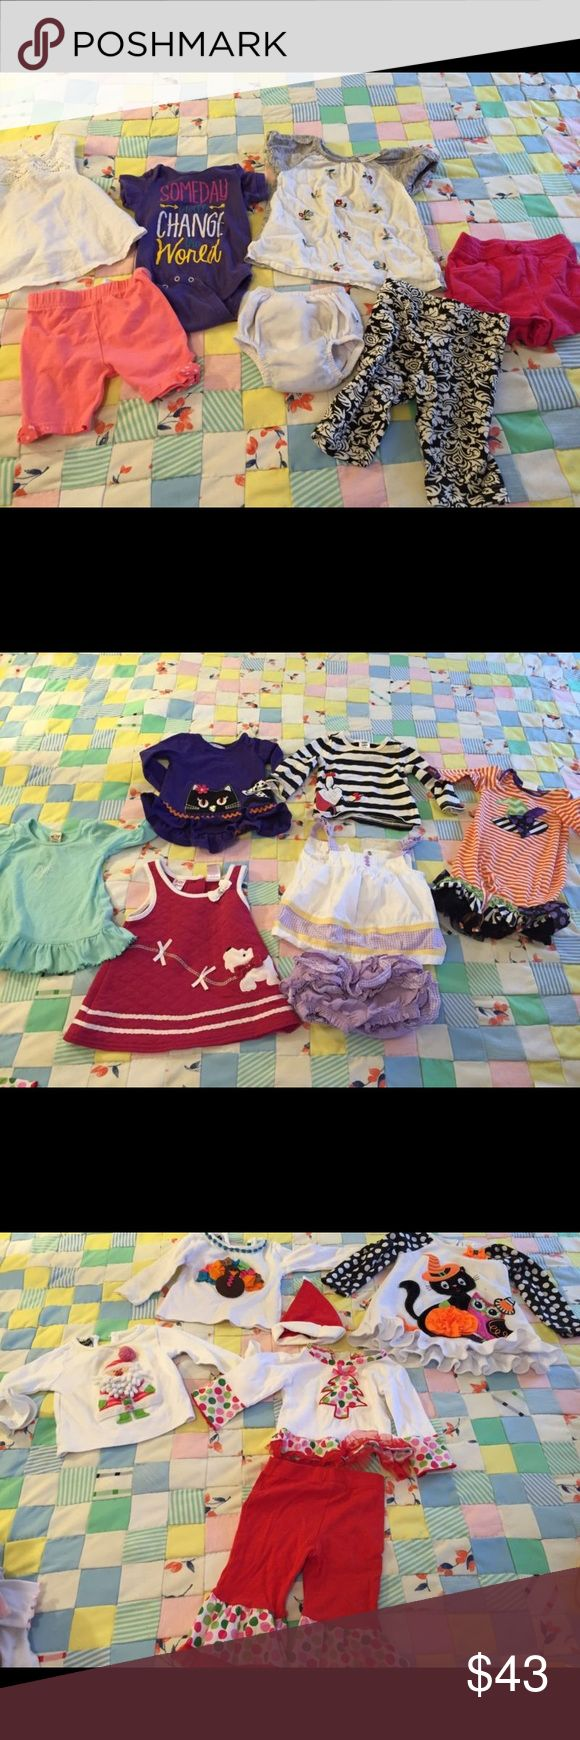 Baby Toddler Lot of 25 Pcs Gymboree Mud Pie More Baby toddler 25 pieces. Name brands! Sizes range from 6-9 months, 9-12 months, 12-18 months and 2T.  Some of the name brands are:  Mud Pie Garanimals Charters Allison Ann Gymboree Oshkosh Babyberl Peaches and Cream There are some stains here and there on most. They are light stains mainly on the white fabric of clothing. Hard to see in pics, but they are there so please know these do have stains! All have been washed and are clean. Otherwise…